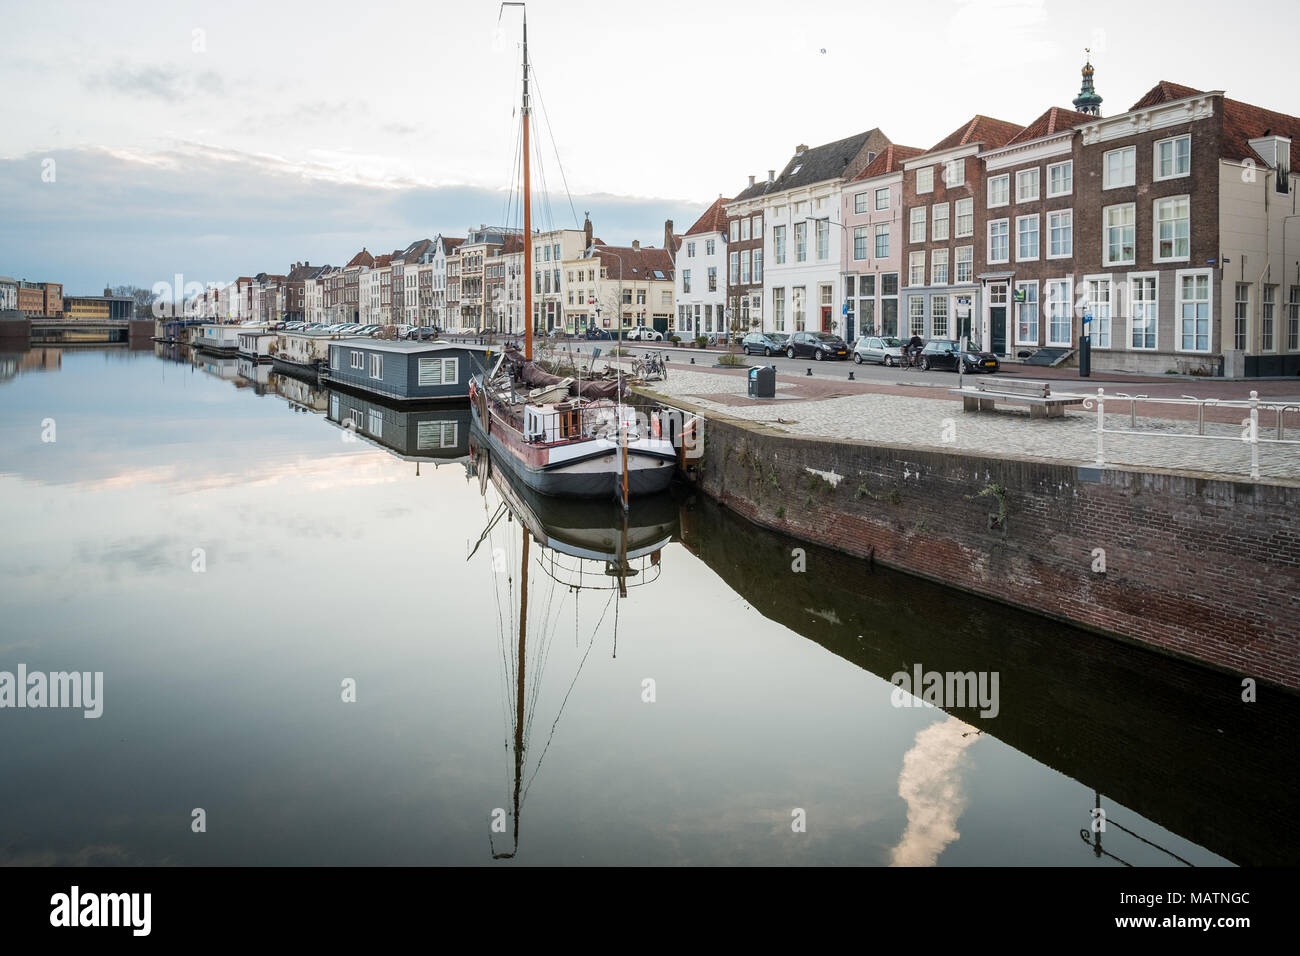 Sunset over the canal in Middelburg, the Netherlands. Stock Photo